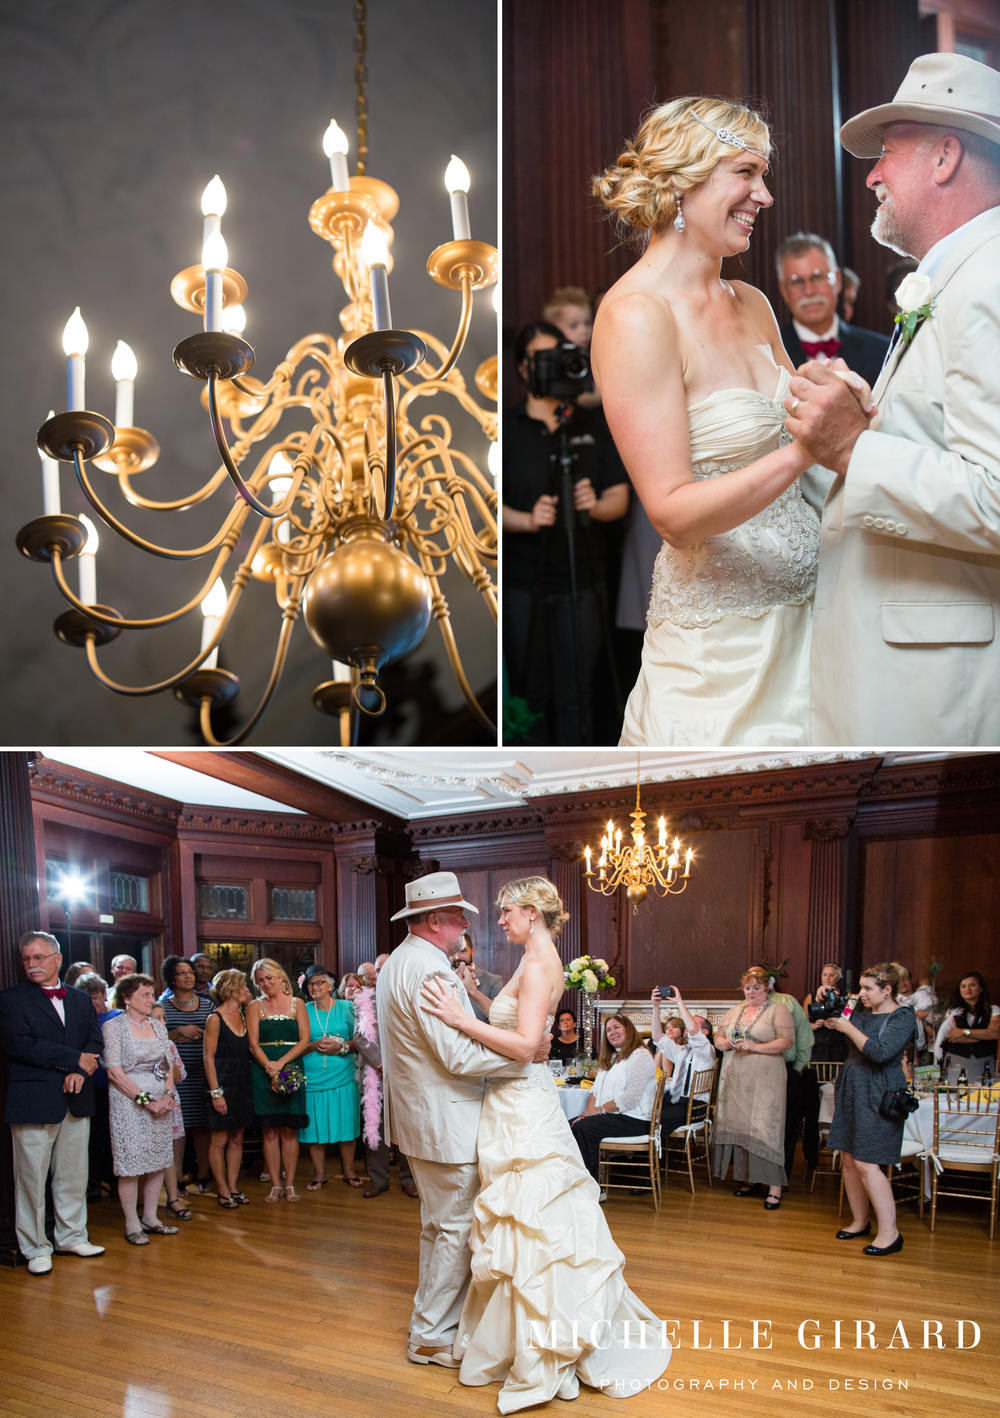 BranfordHouseWedding_GrotonCT_MichelleGirardPhotography10.jpg